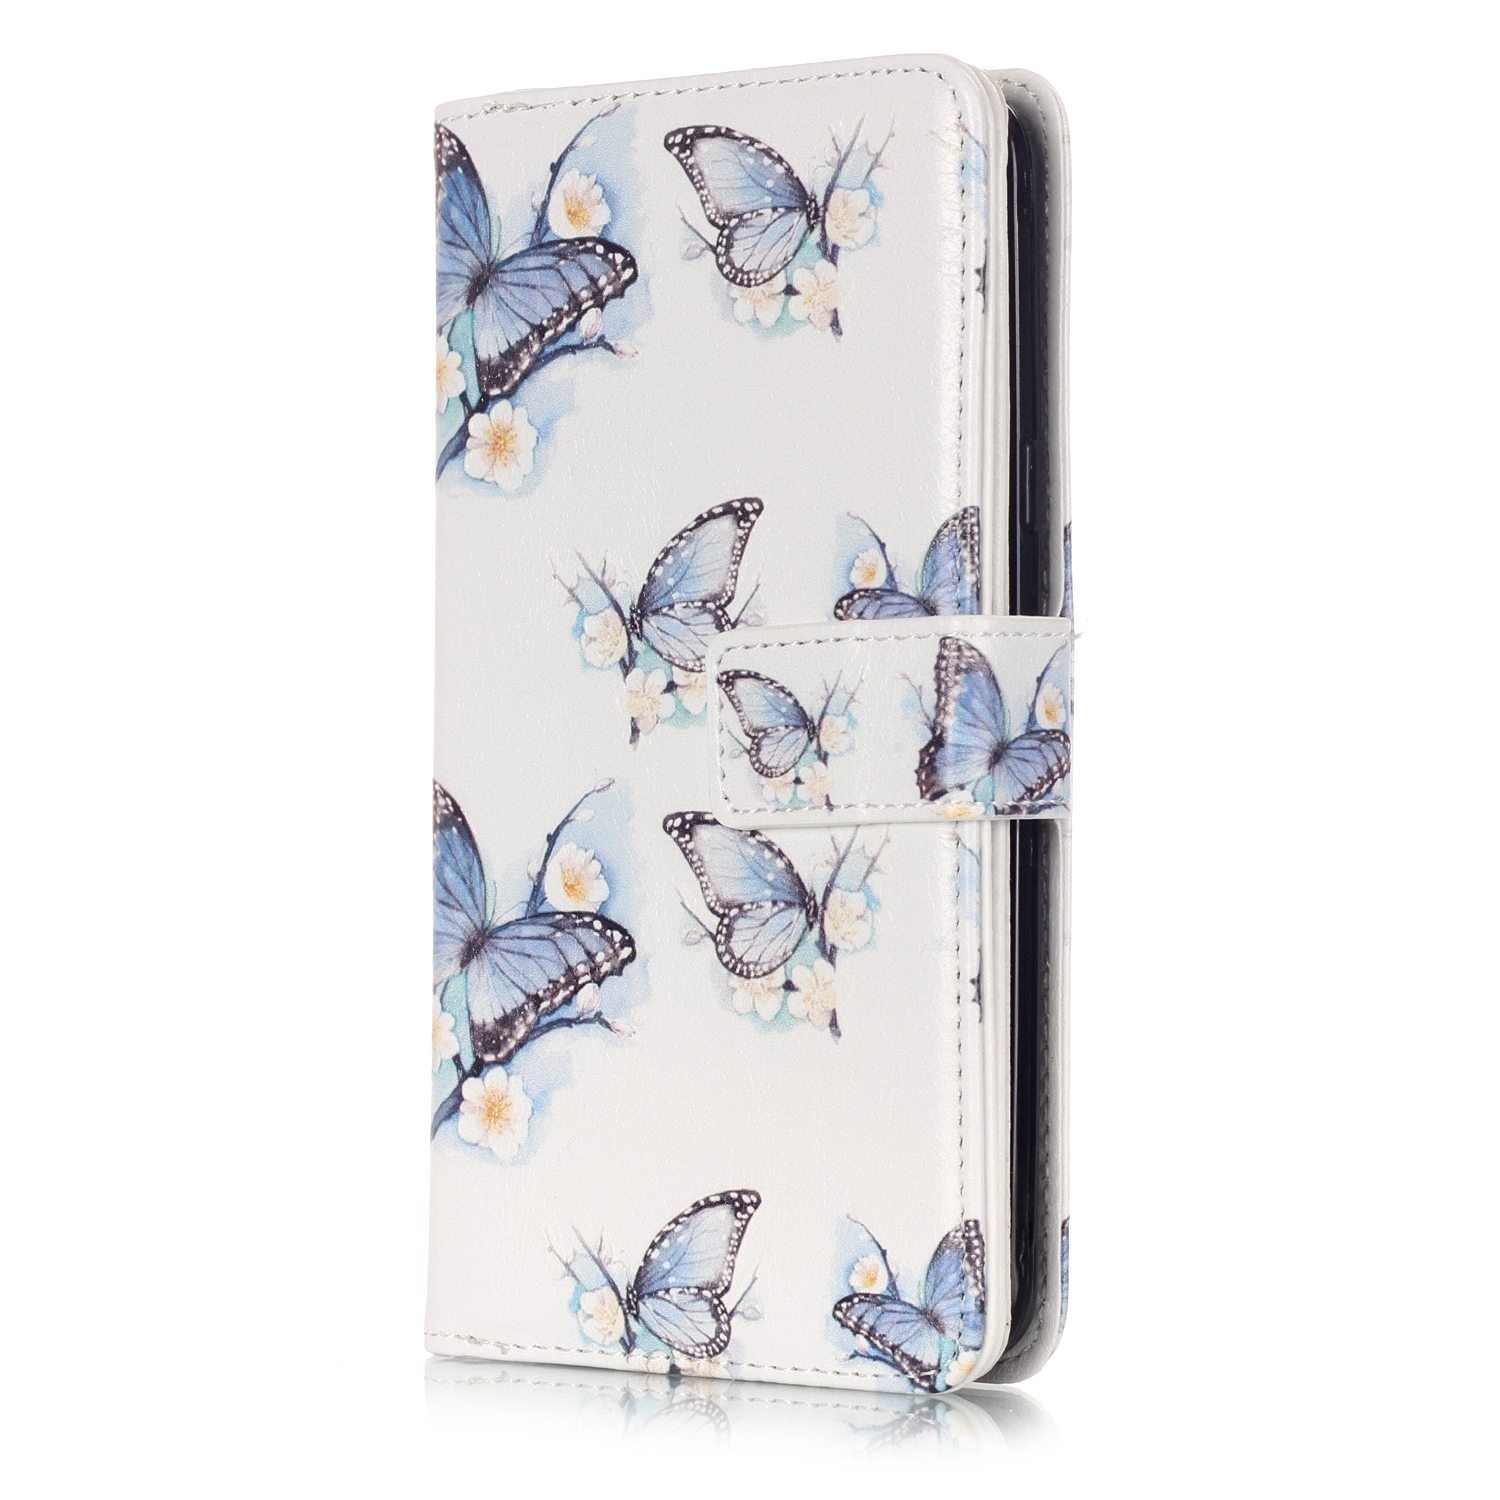 JuSha for Apply to Samsung Galaxy J5 2016 J510 Edge Case PU Leather Wallet Magnetic Cover Skin(Butterfly Mobile Phone Case)